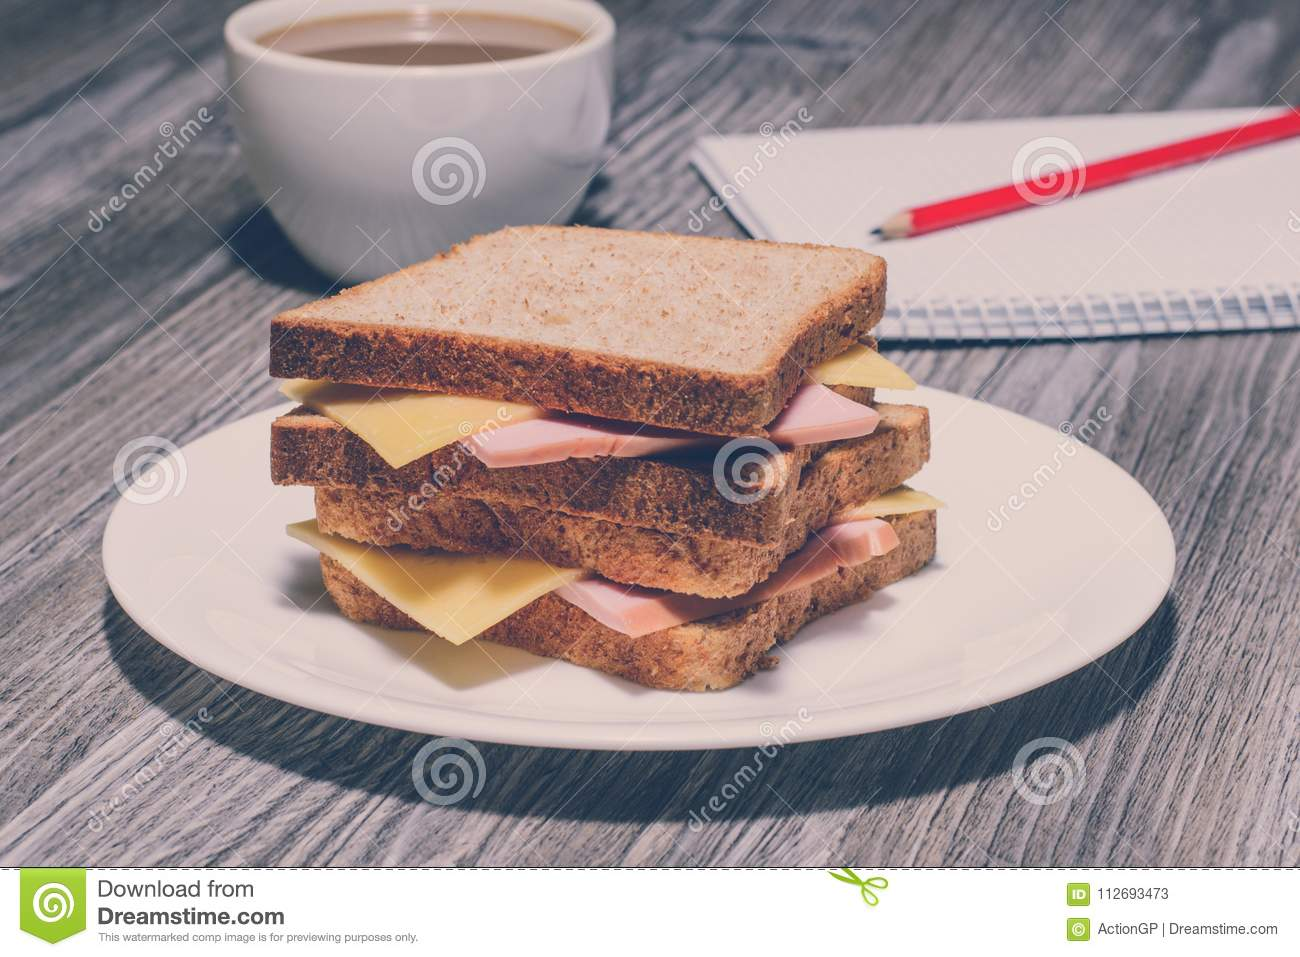 Snack education fast junk food concept. Business lunch. Tasty ham sandwich with cup of tea, notebook and a pencil. Vintage effect,